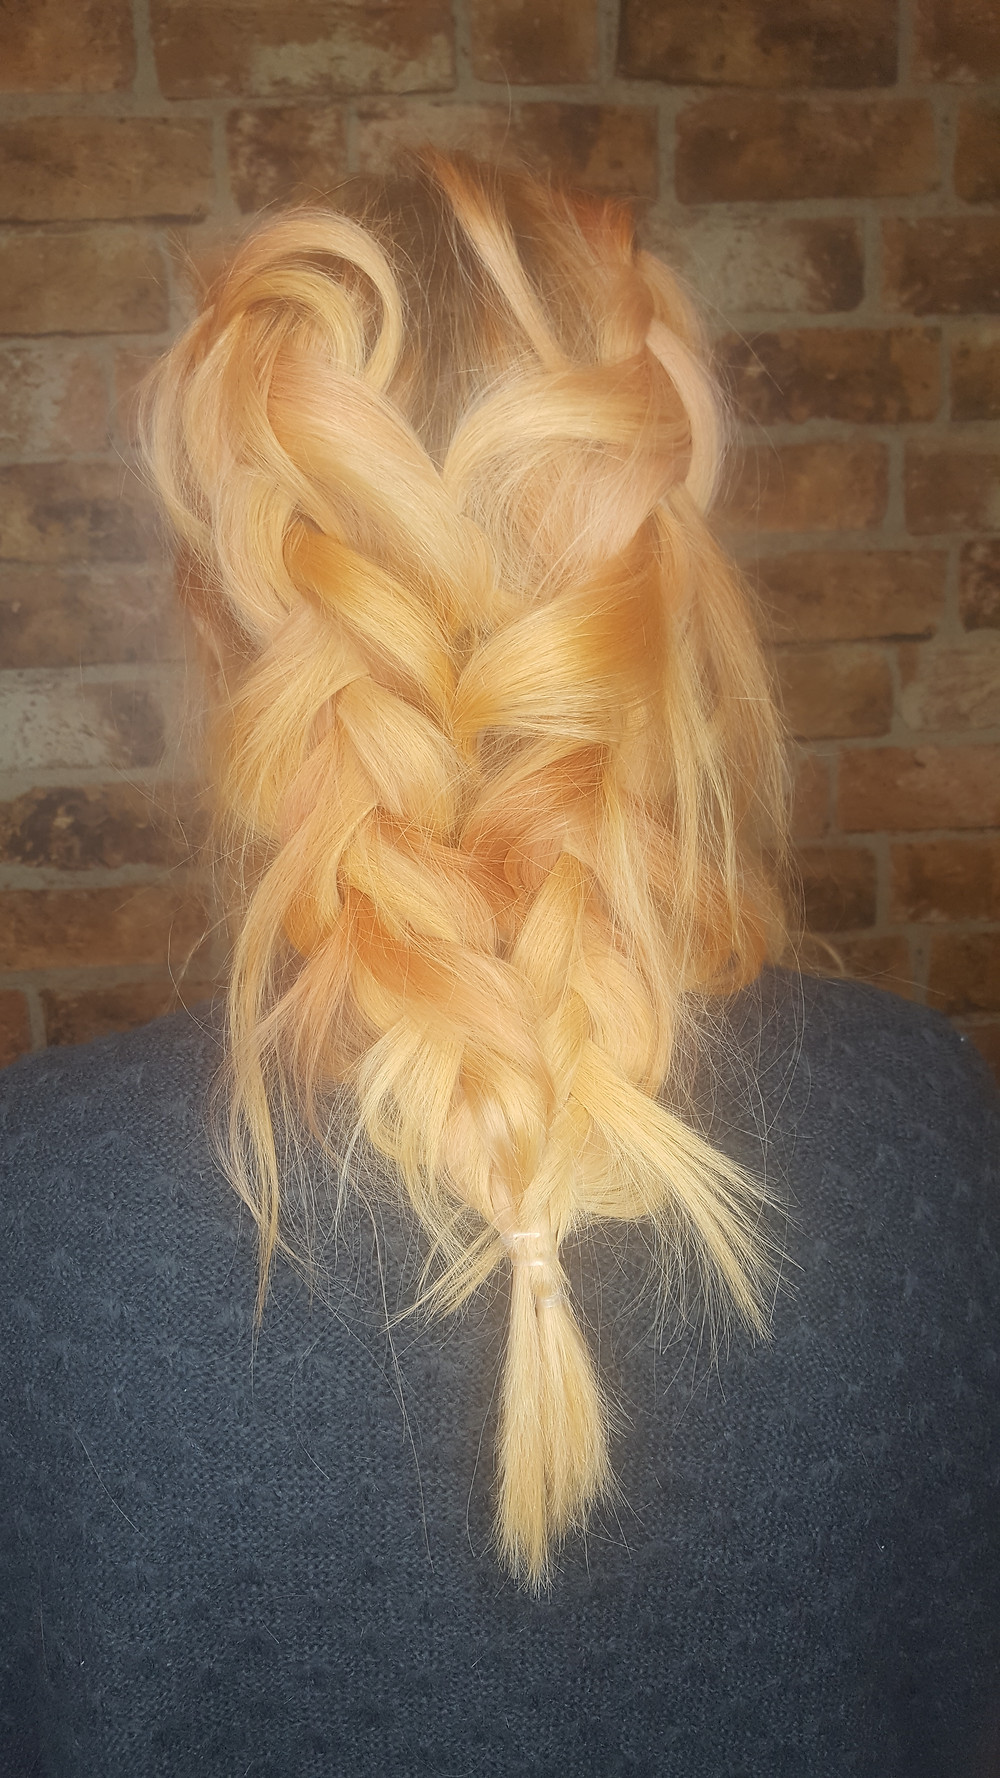 Undone Braid at Bespoke Salon